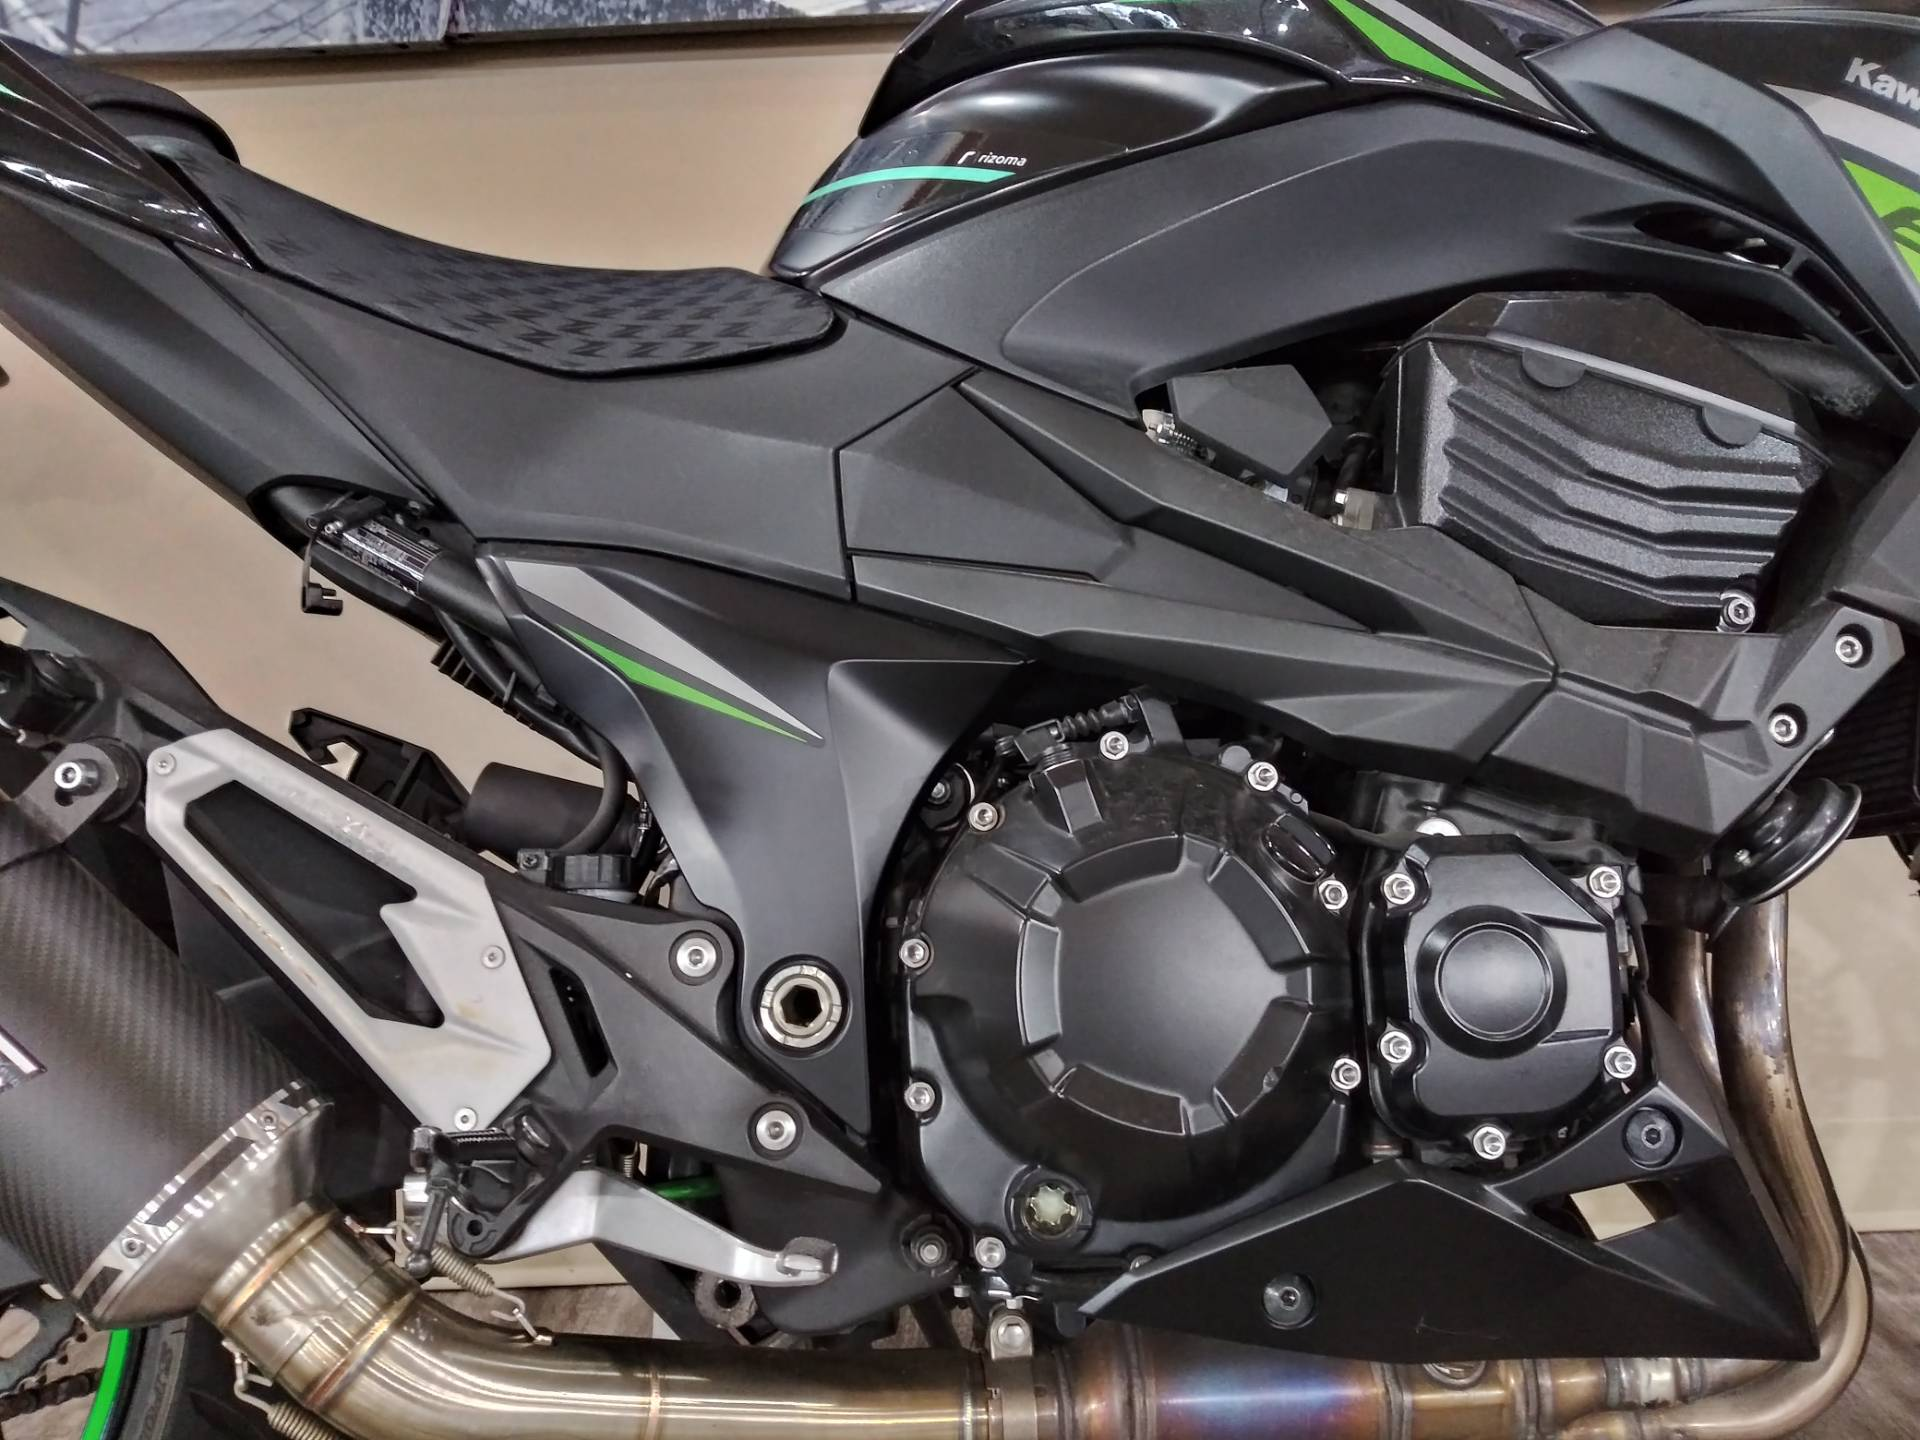 2016 Kawasaki Z800 ABS in Knoxville, Tennessee - Photo 3